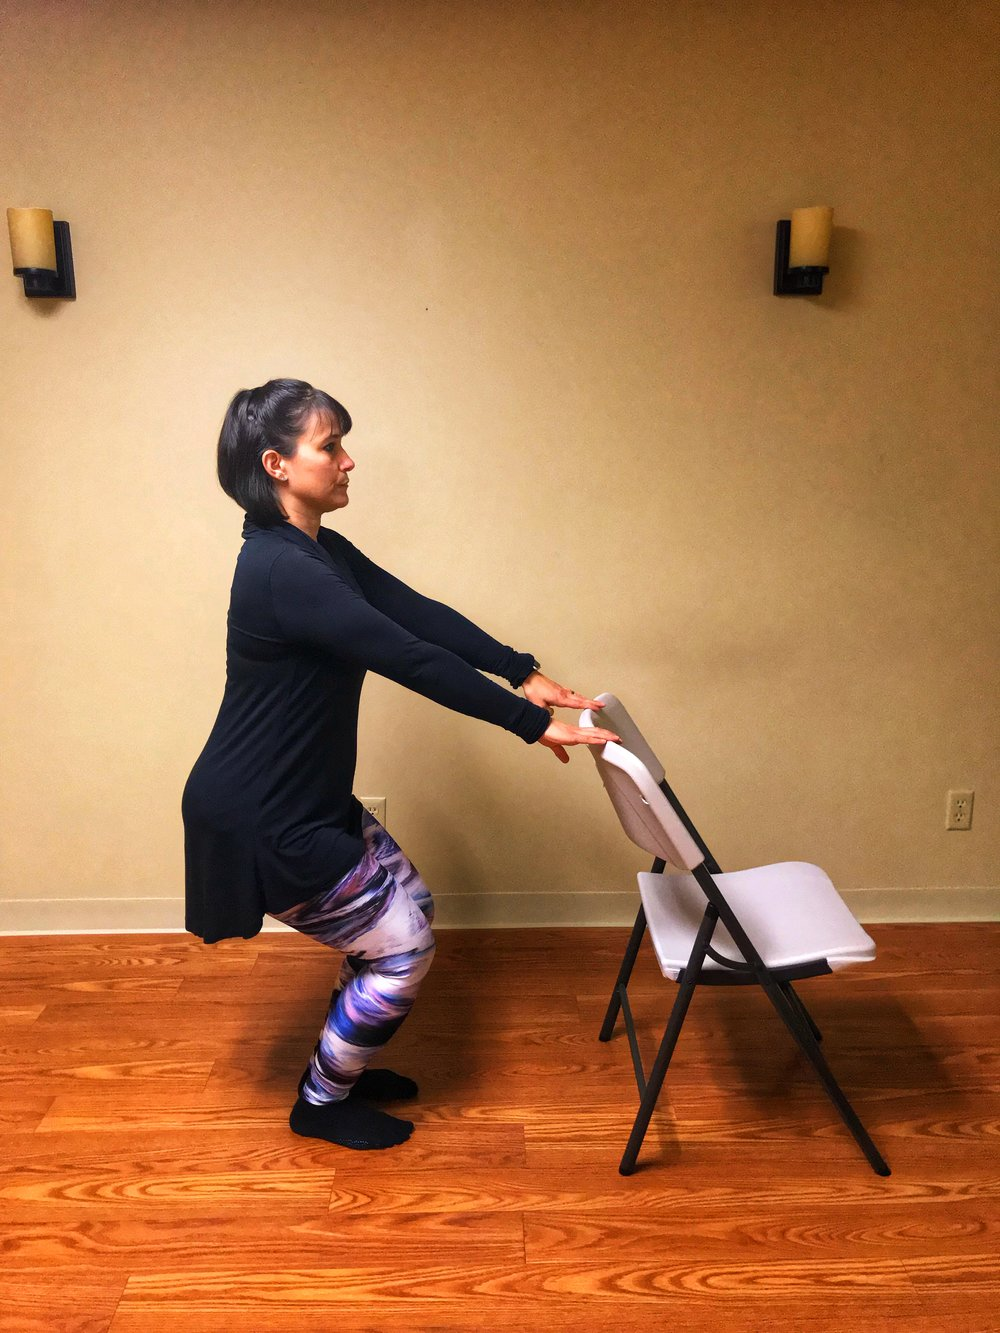 Sit back as if sitting in a chair. Use a chair in front of you to remain stable or if your balance is shaky. Your feet should be flat on the floor, hip width apart, and directly beneath your knees.